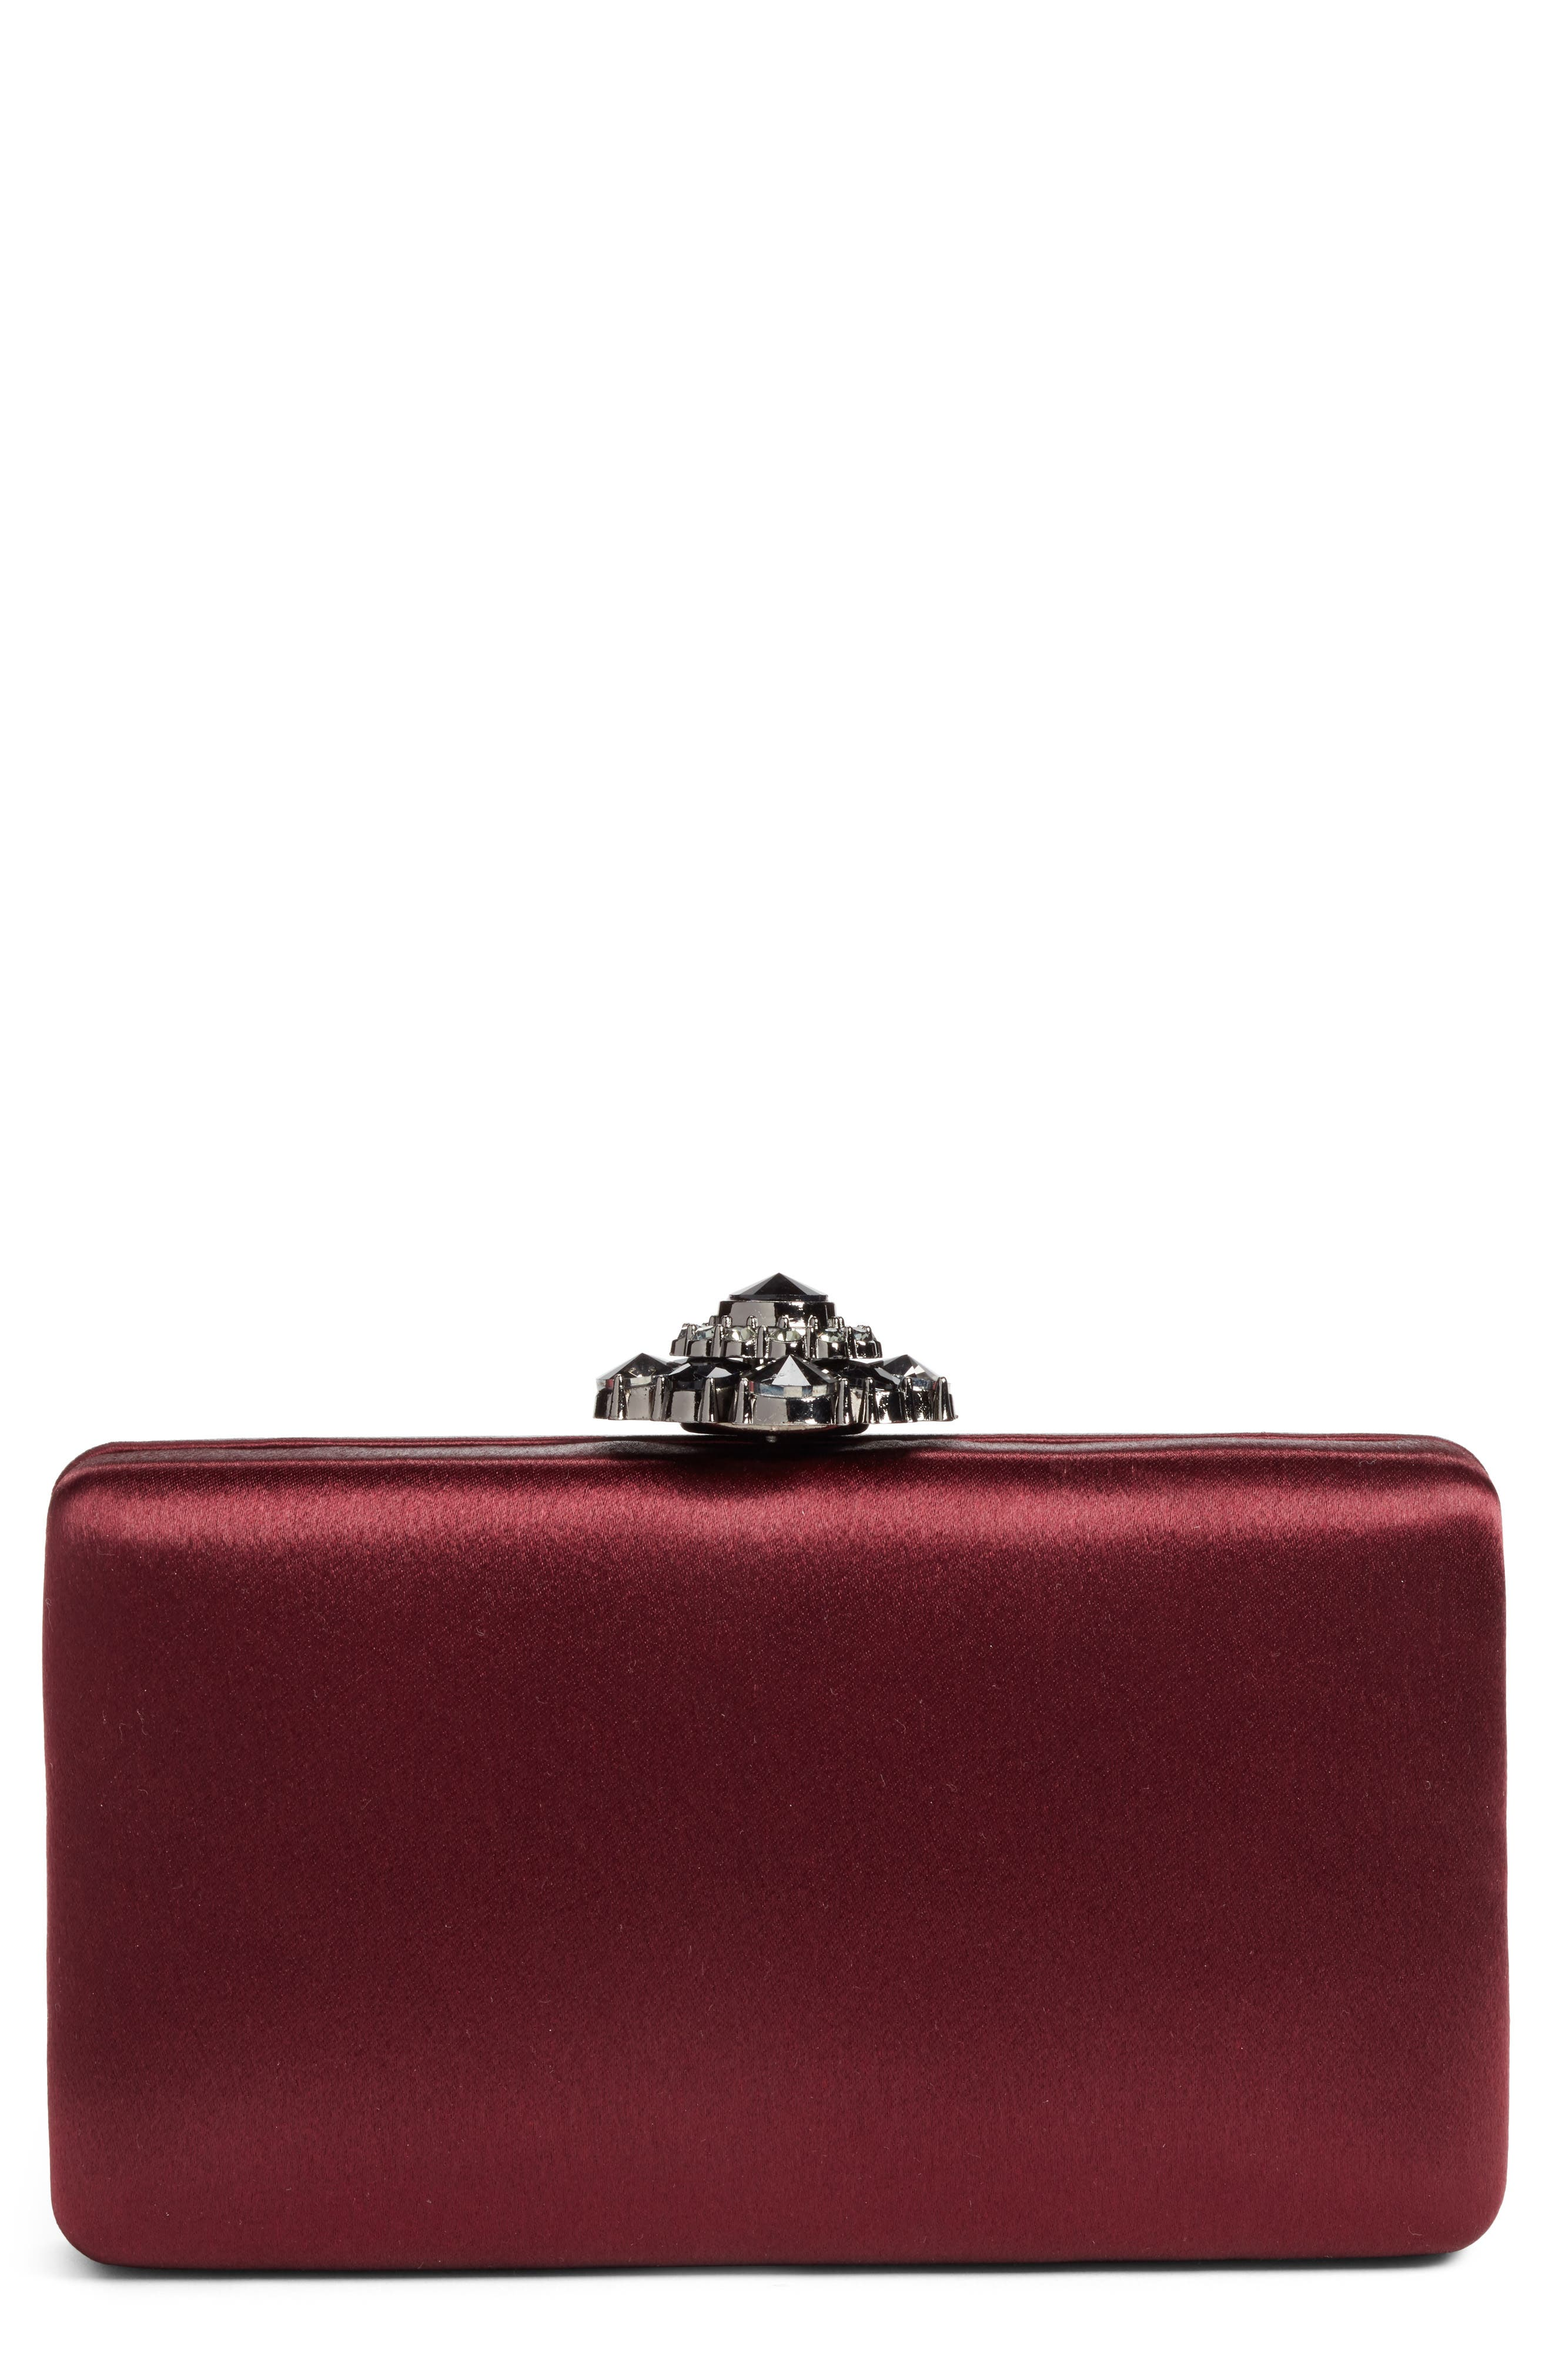 Crystal Flower Clasp Box Clutch,                             Main thumbnail 1, color,                             930